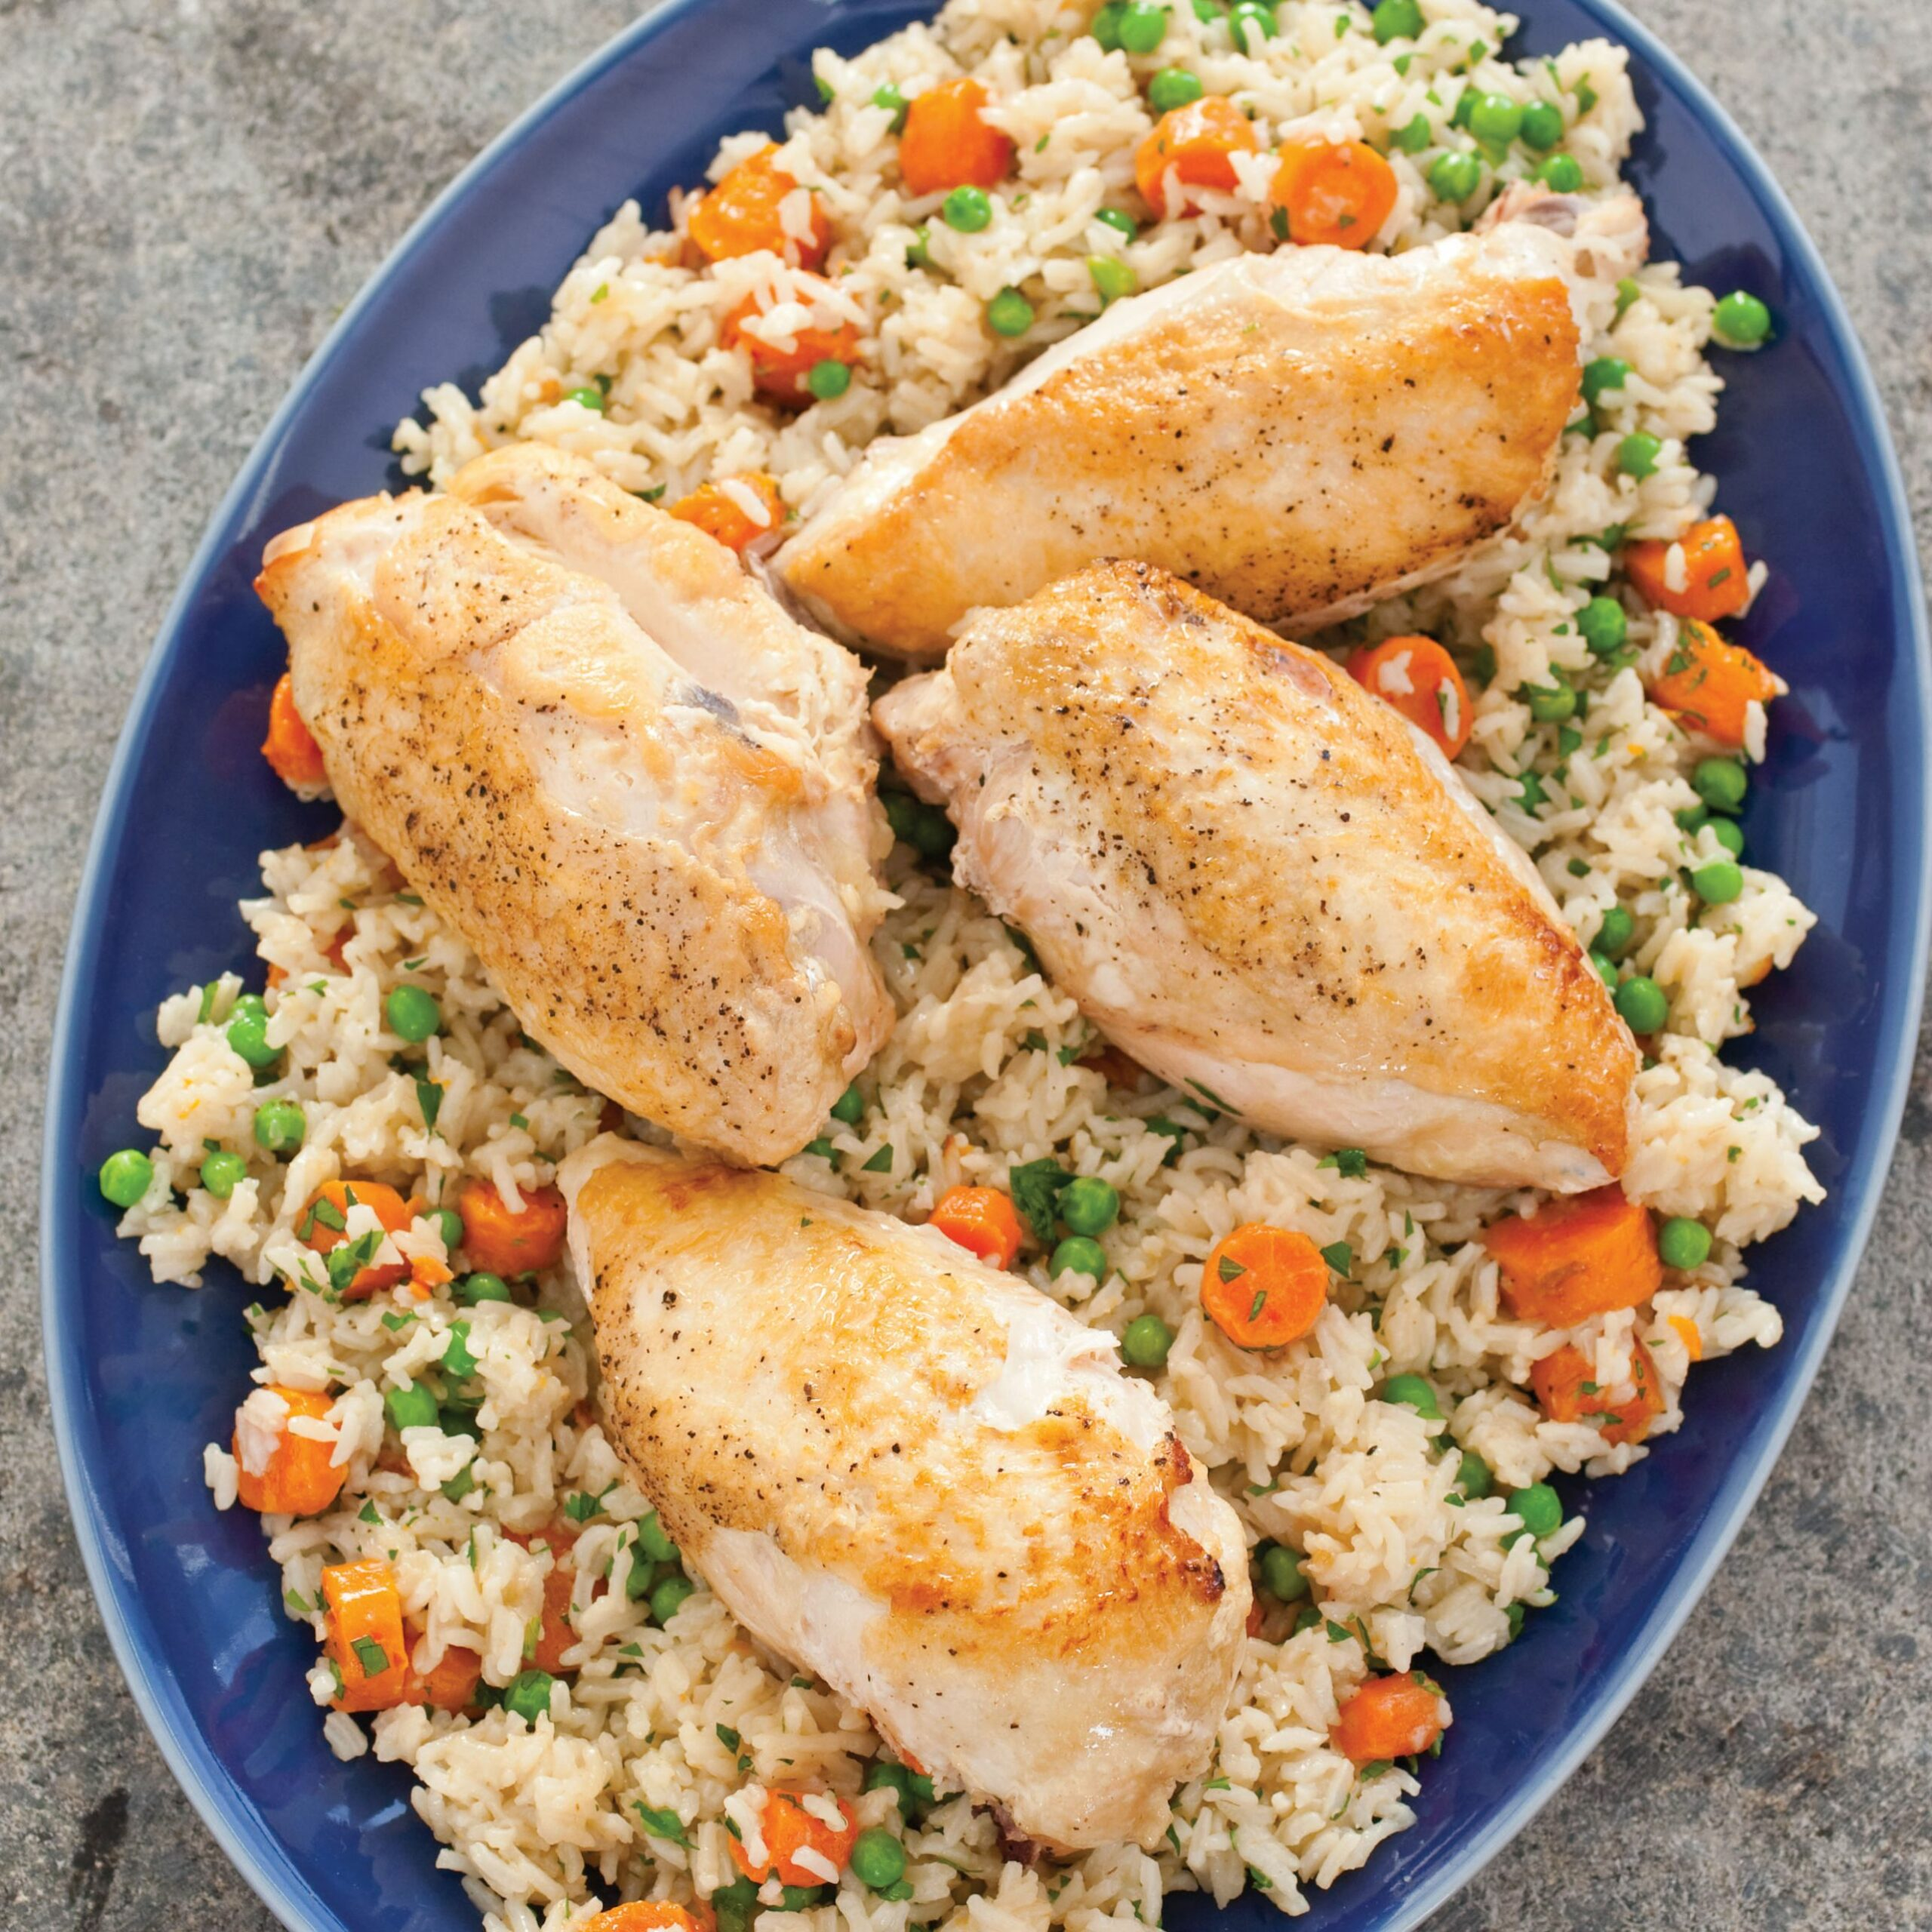 Pressure-Cooker Easy Chicken and Rice - Recipes Chicken Breast And Rice